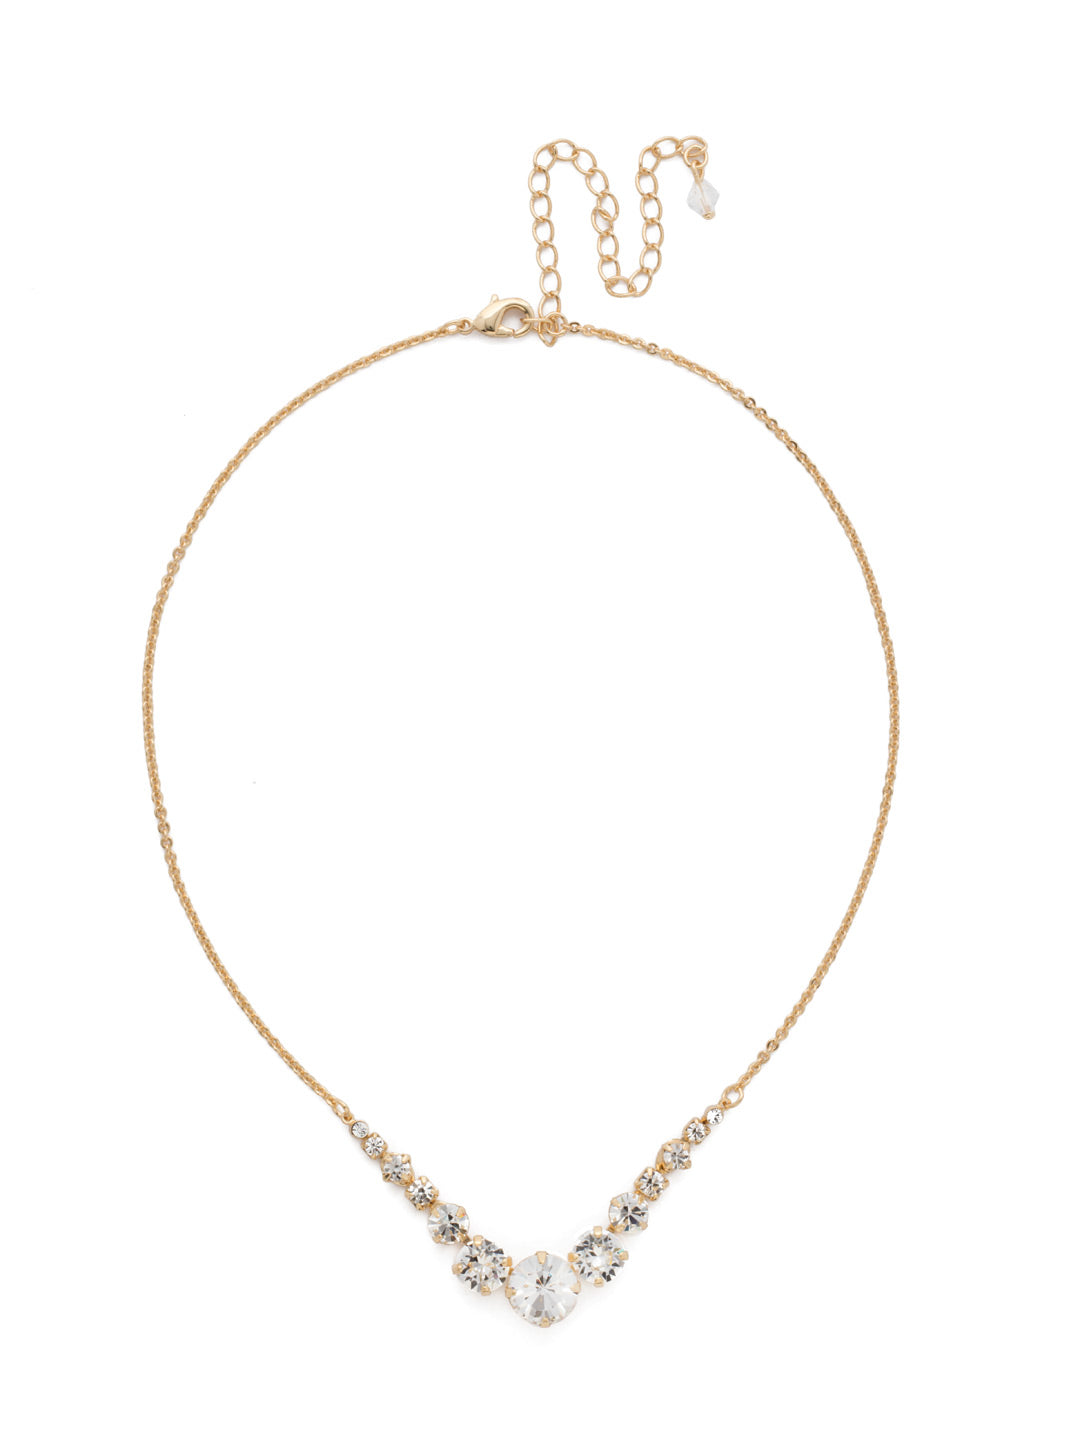 Delicate Round Tennis Necklace - NCQ14BGCRY